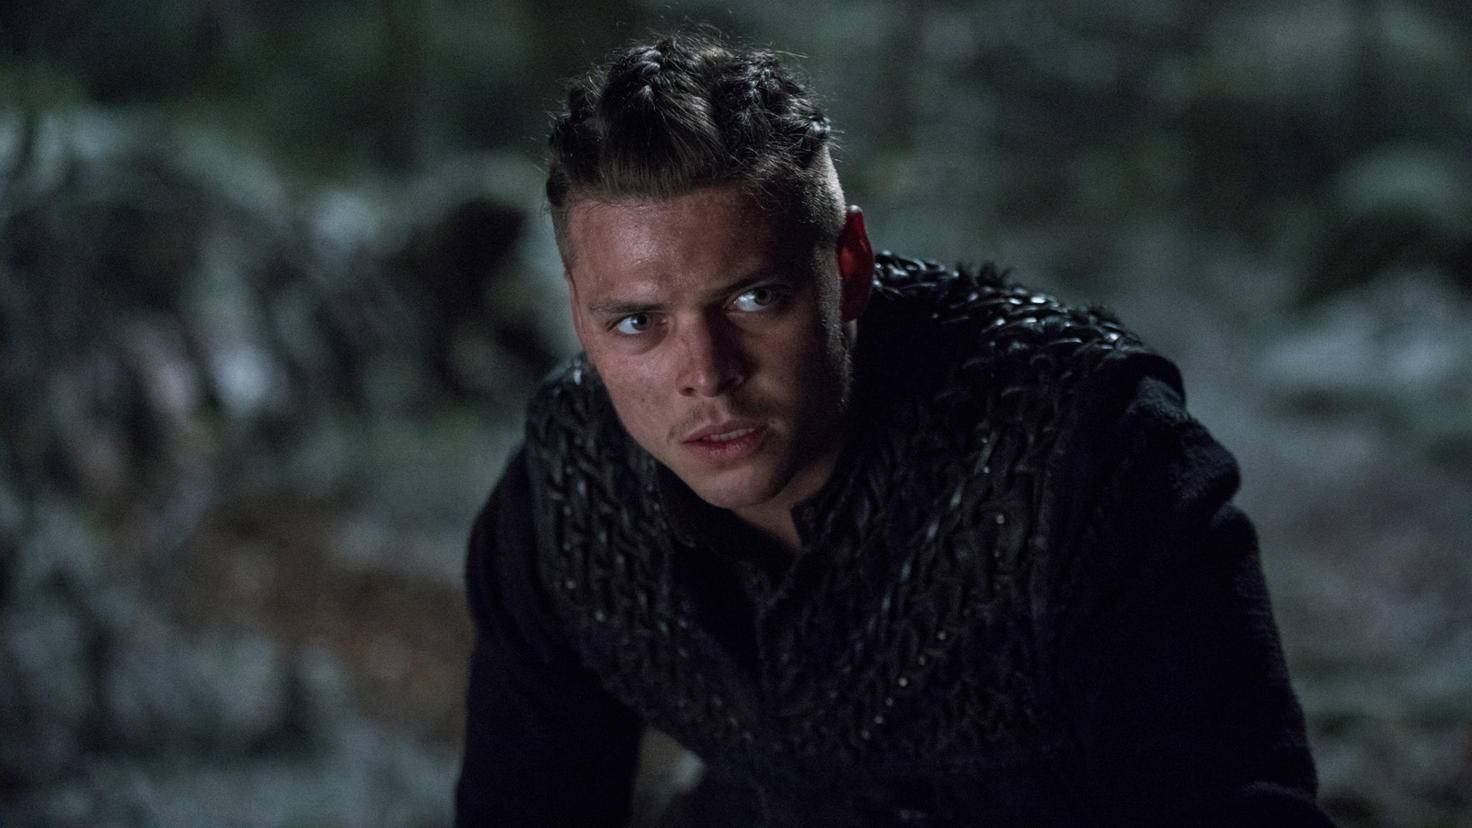 Vikings Ivar Staffel 5 Teil 2